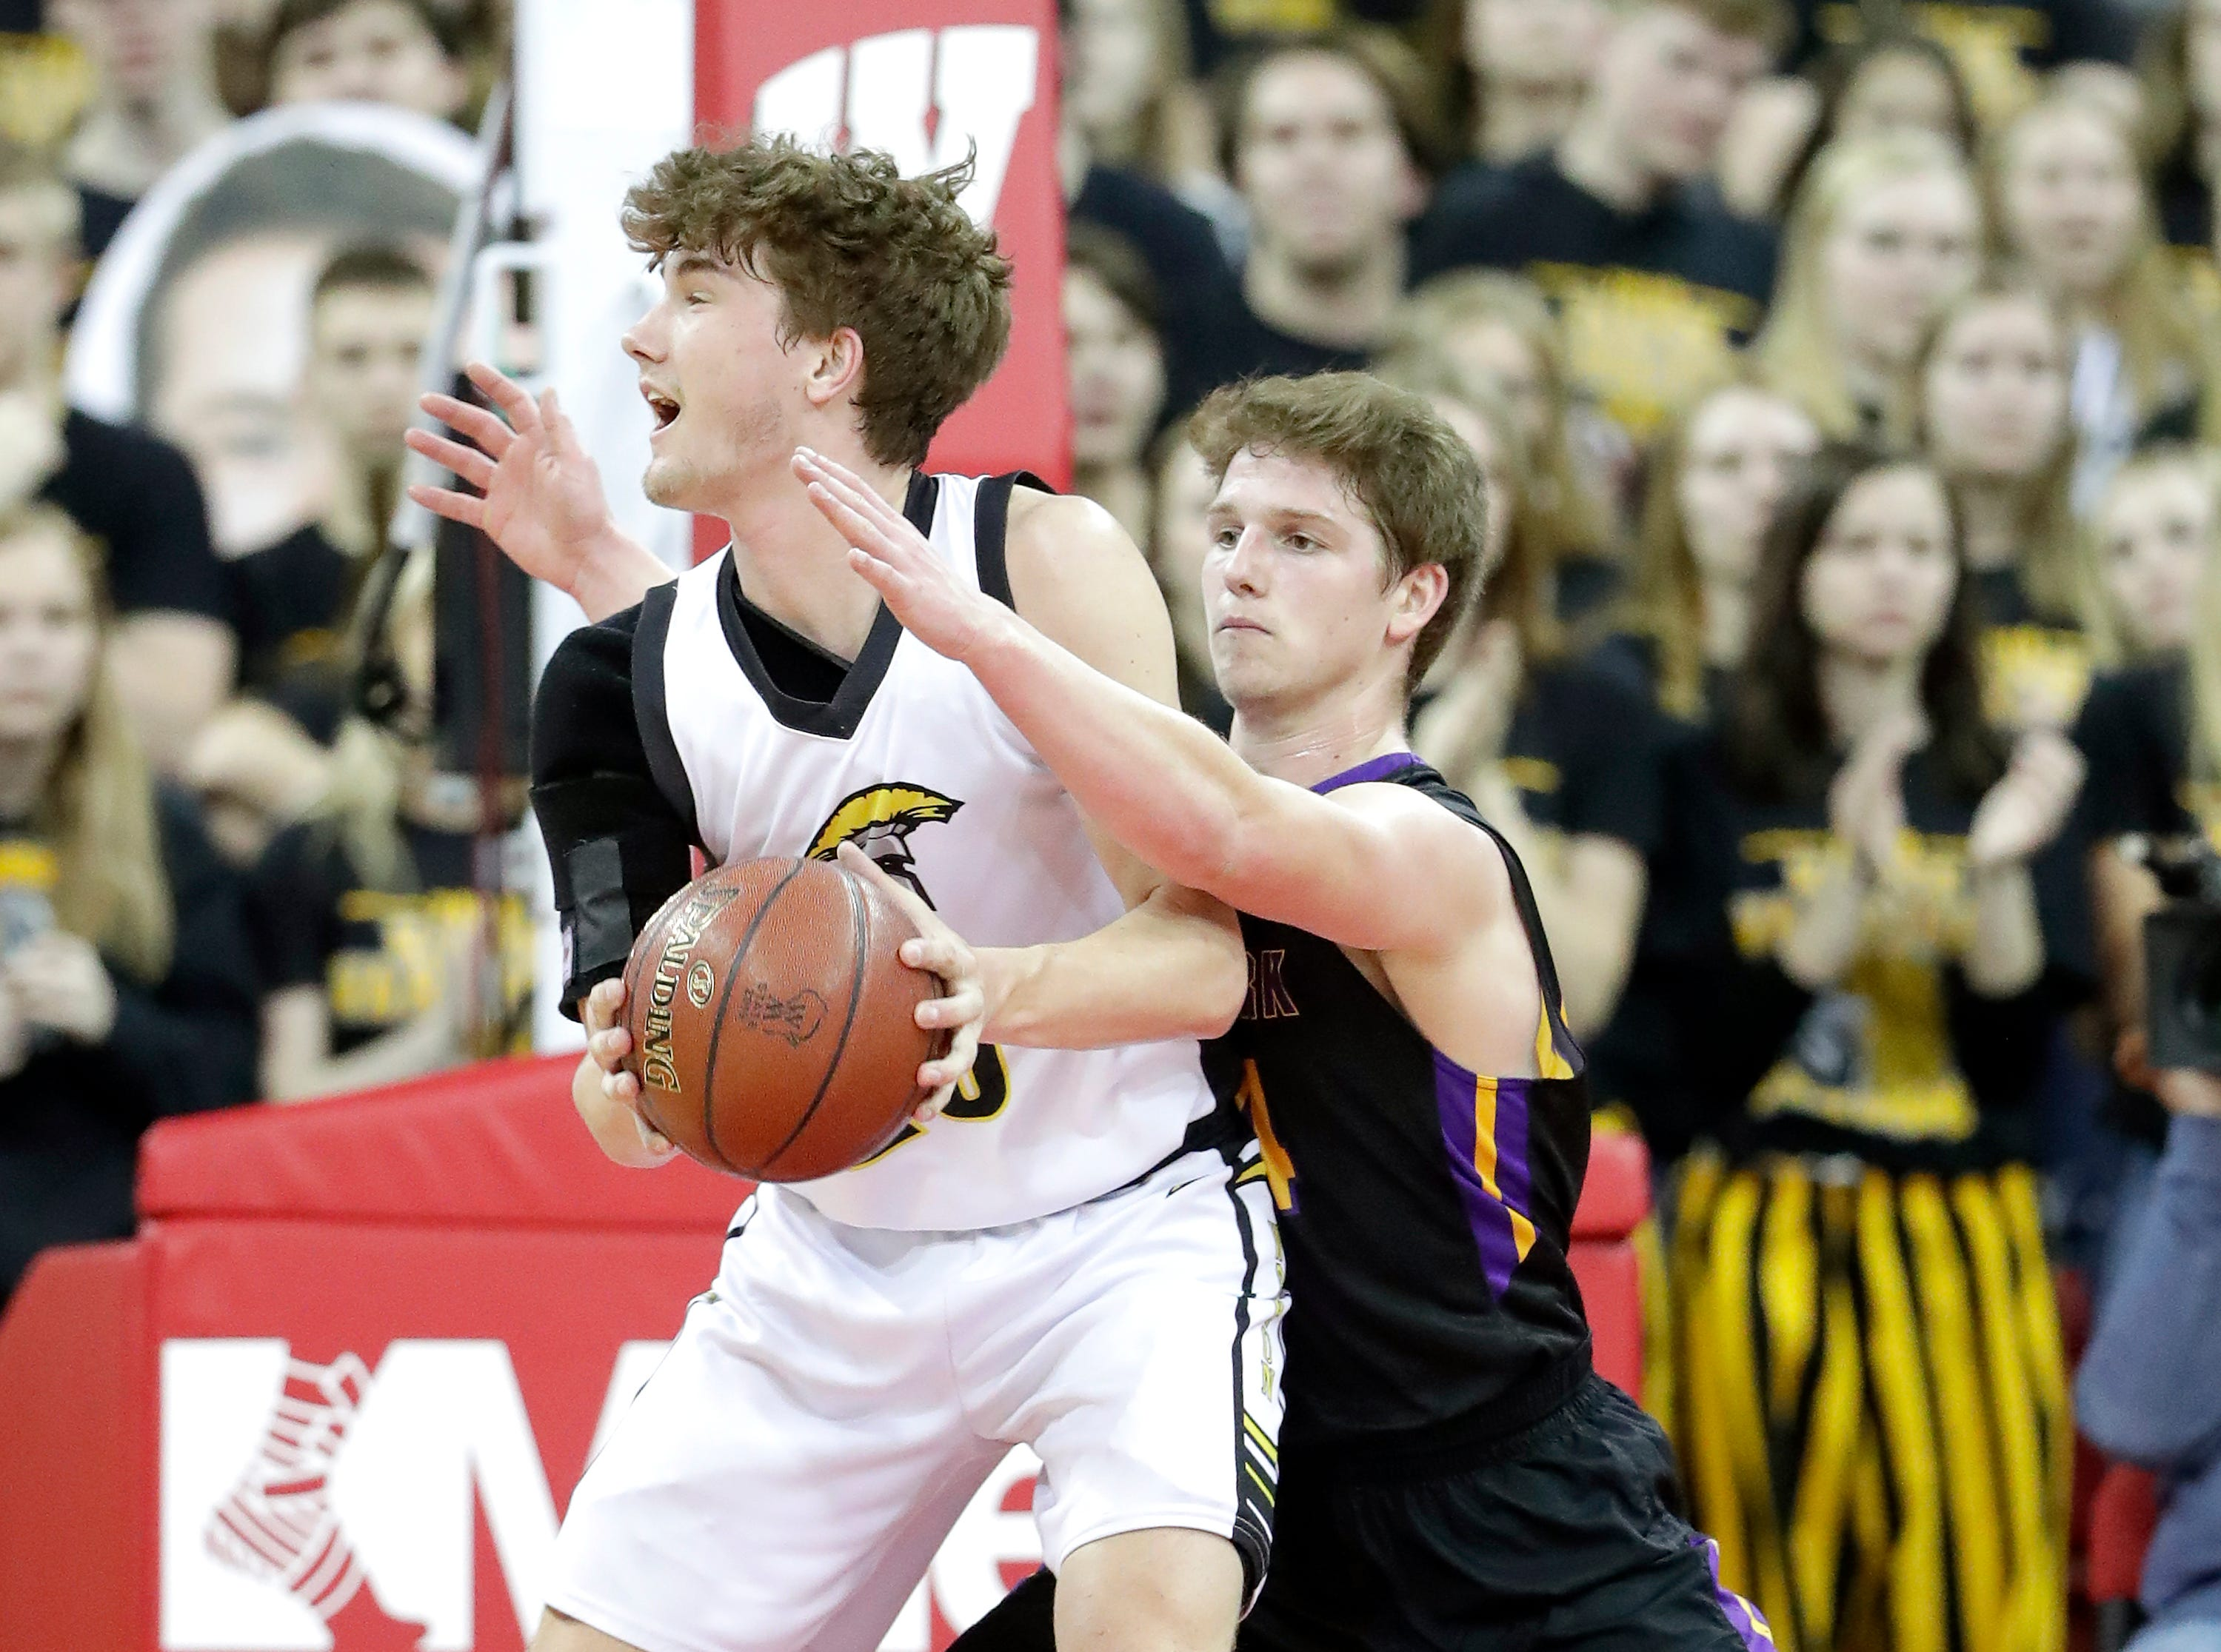 Denmark High School's #44 Jack Satori, back, against Waupun High Sch ool's #23 Reece Homanduring their WIAA Division 3 boys basketball state semifinal on Thursday, March 14, 2019, at the KohlCenter in Madison, Wis.